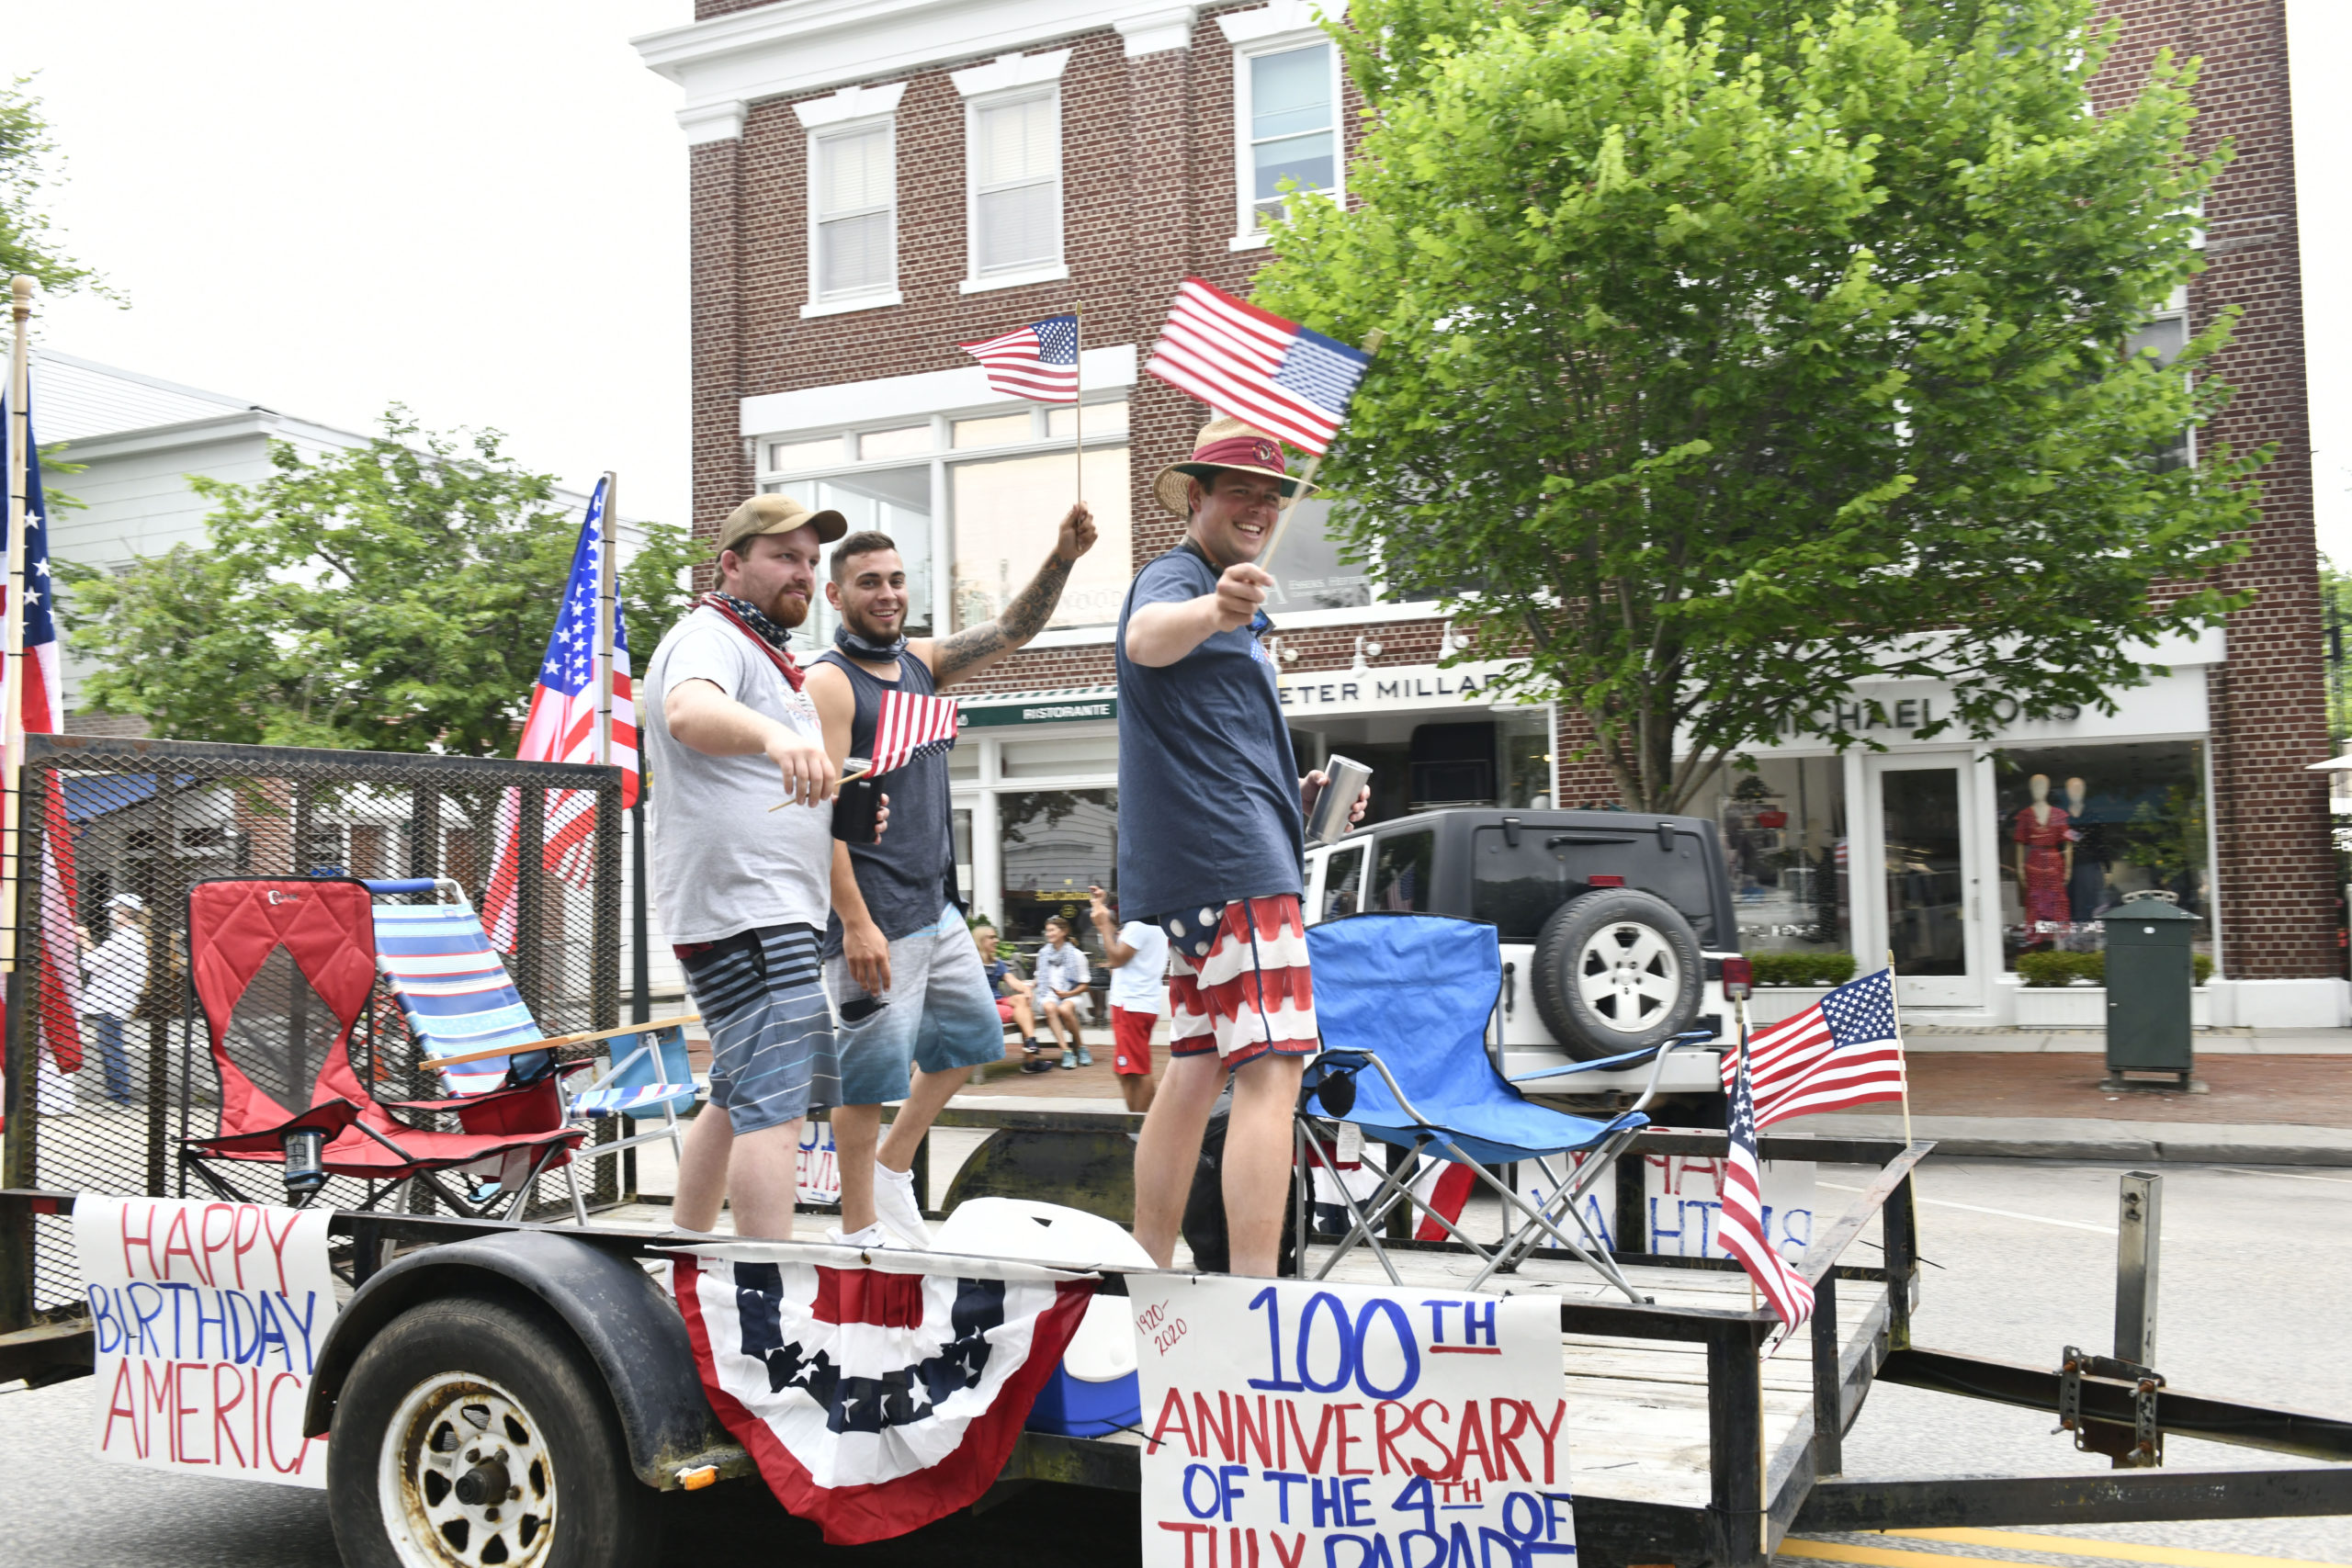 The parade in Southampton Village on Saturday morning.